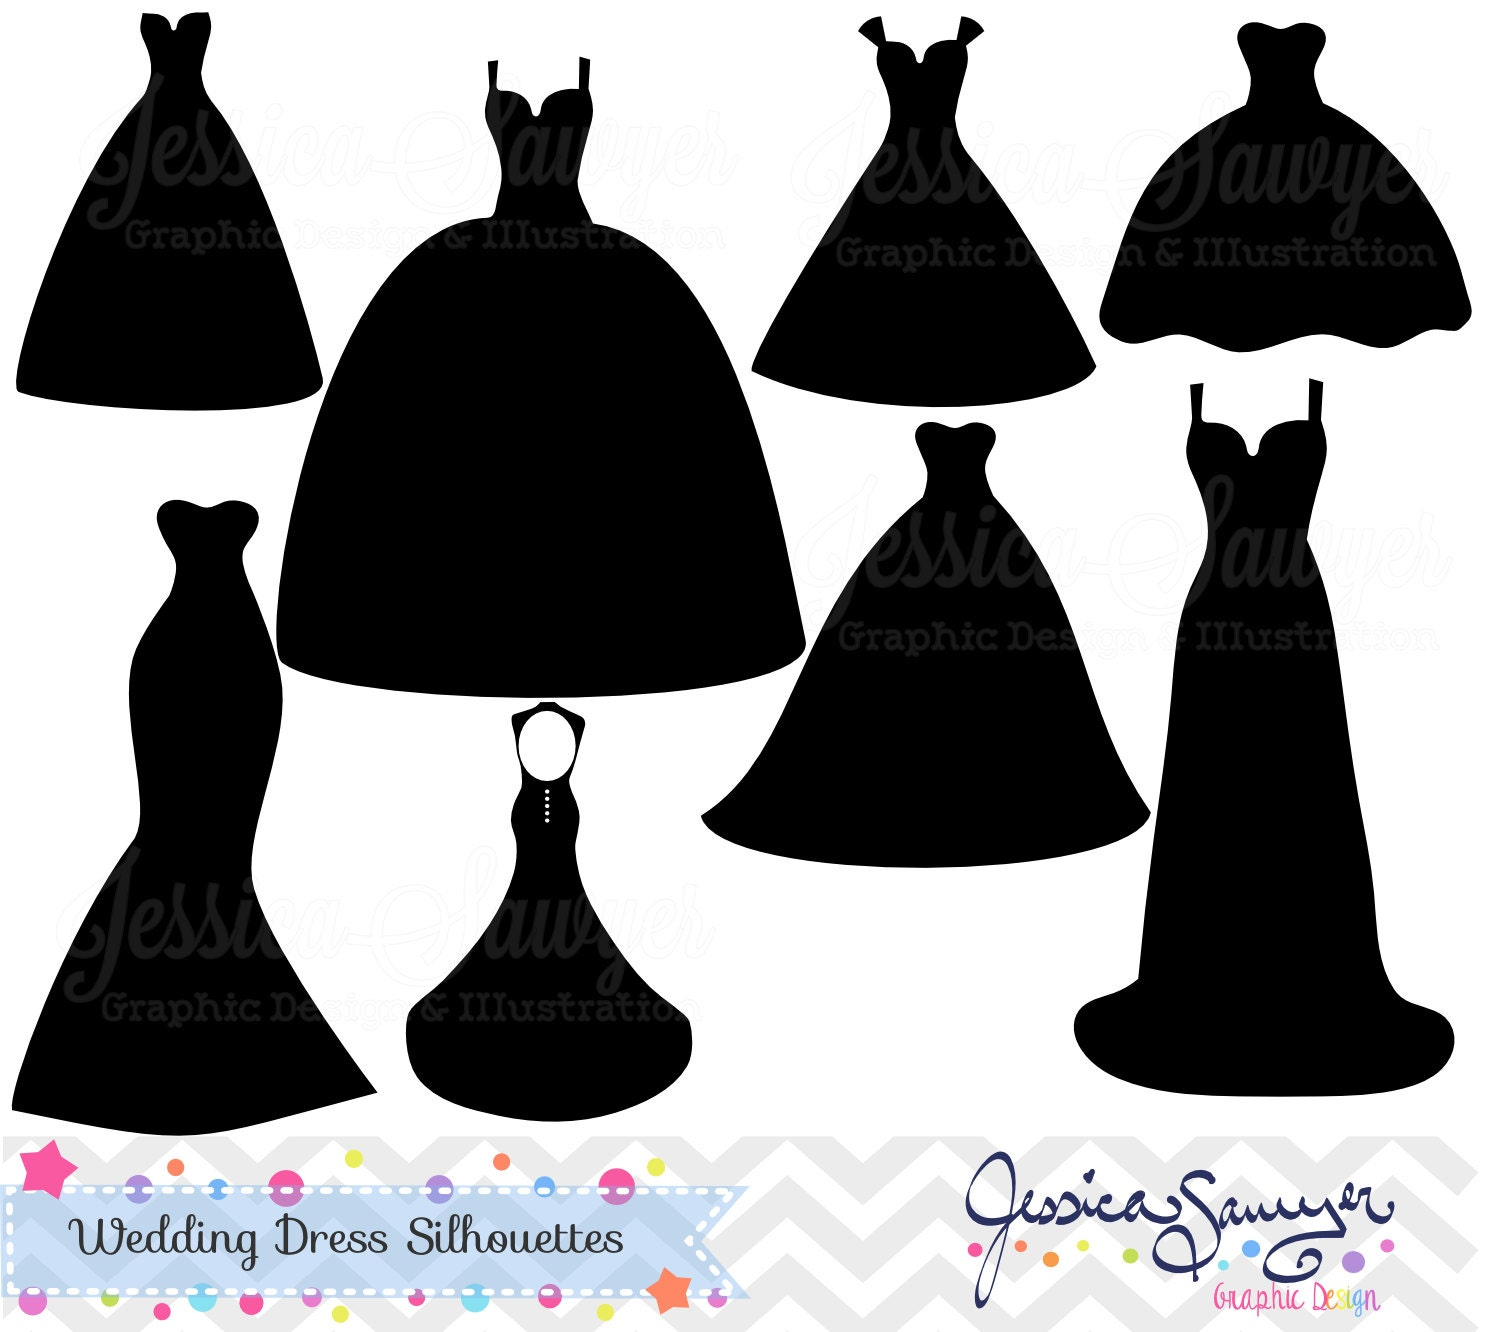 Bridal Gown Silhouettes